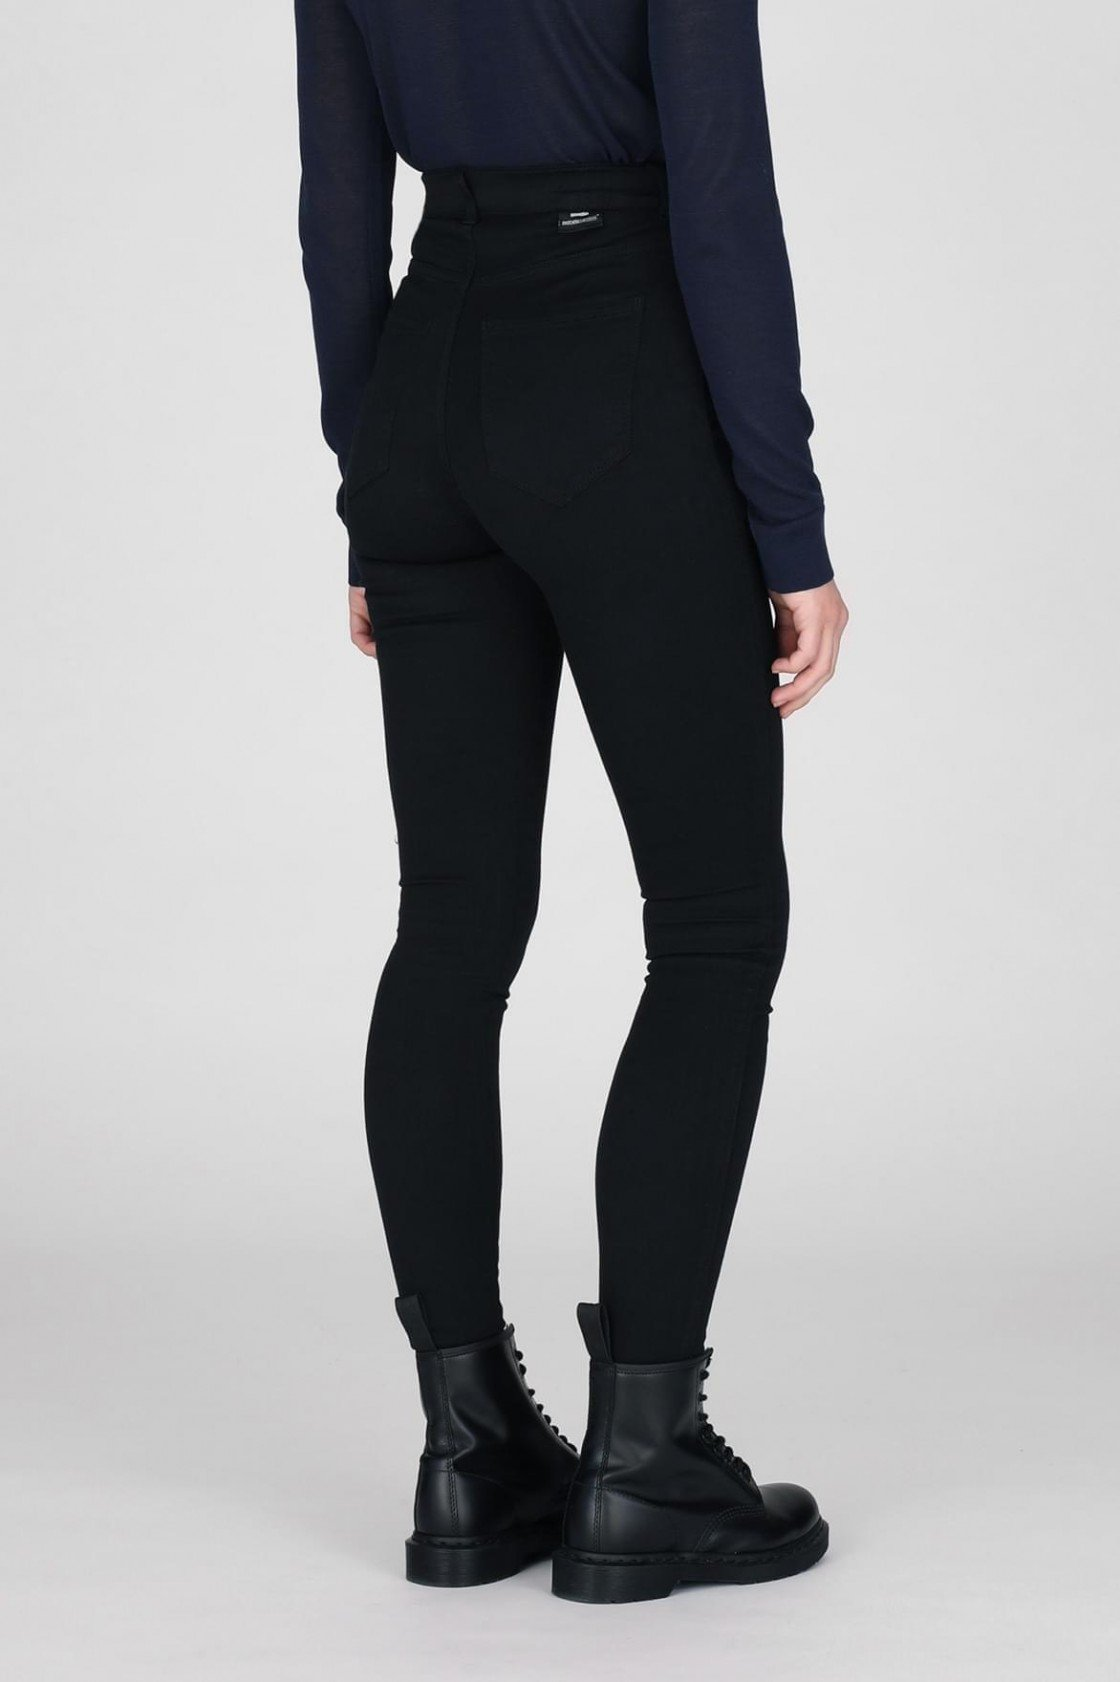 Moxy Black Dr Denim